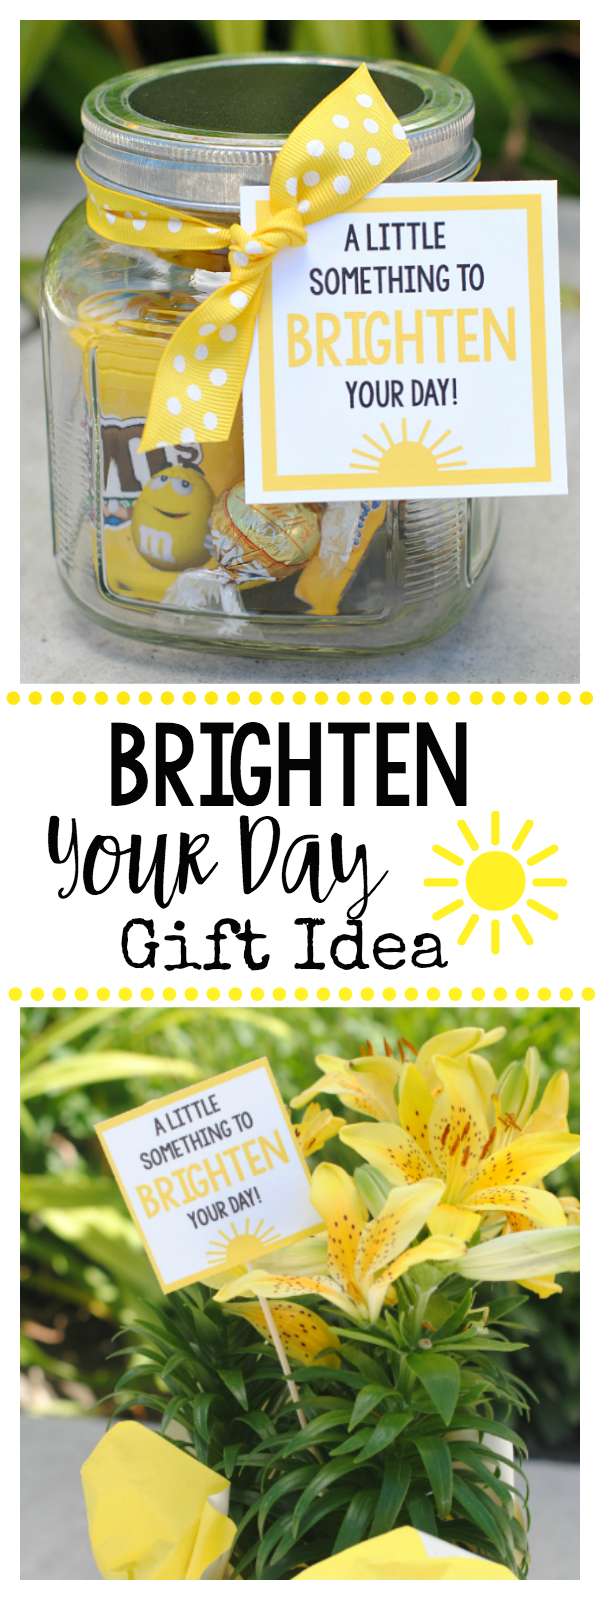 Cheer Up Gift Idea-A Little Something to Brighten Your Day. Give this fun and bright gift idea to cheer someone up. such a simple gift idea. #gift #giftidea #brightenyourdaygift #fungifts